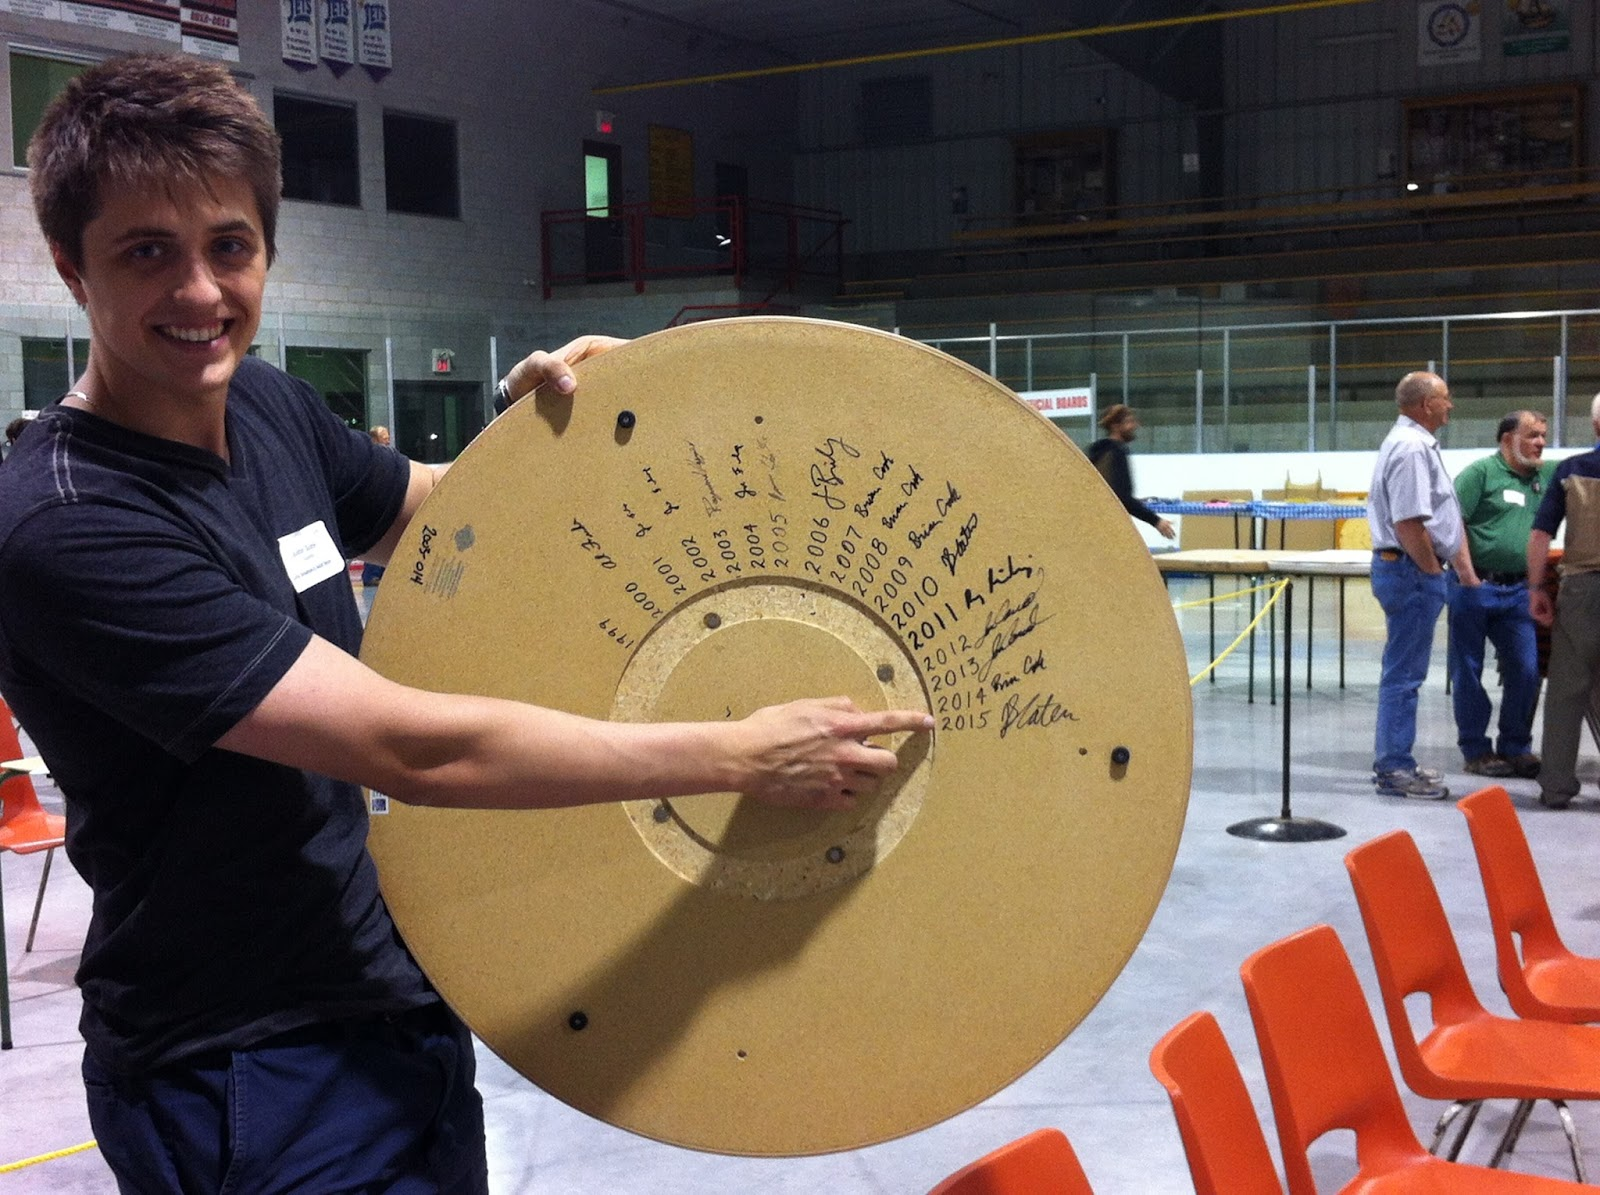 Justin Slater, 2015 World Crokinole Champion, posing with the World Champion signature board.